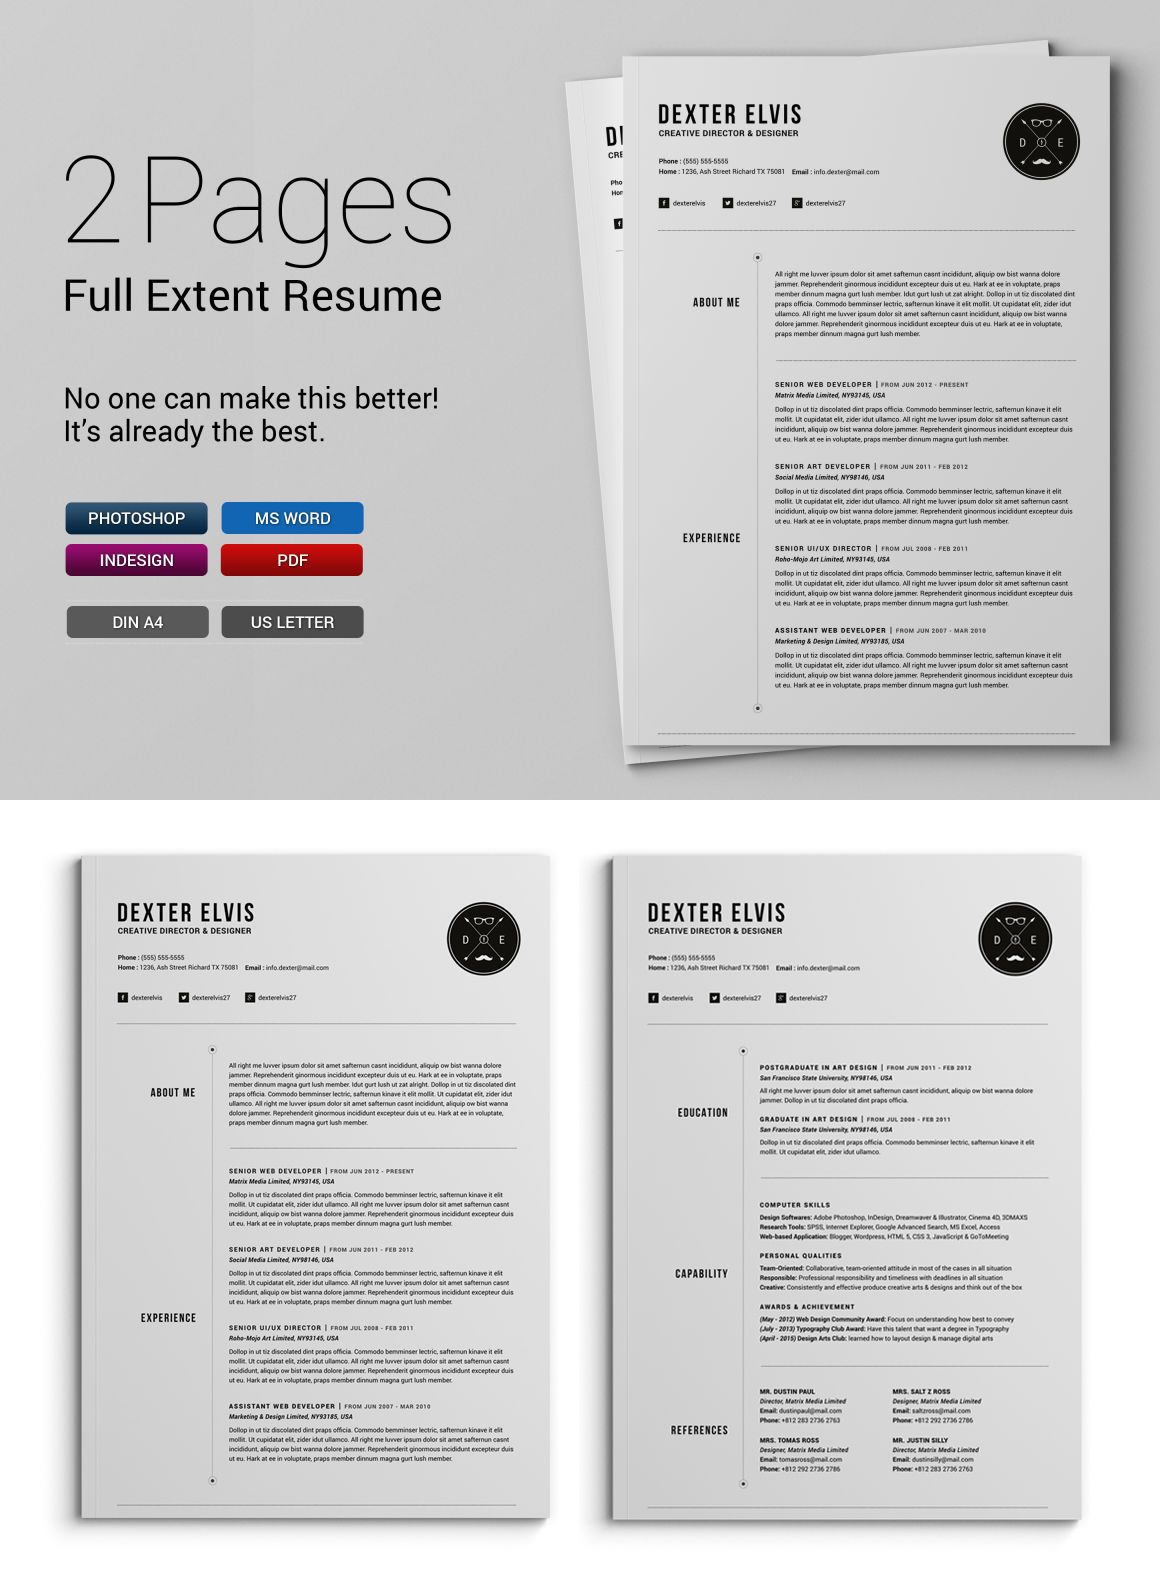 Pages Templates Resume 2 Pages Full Extent Resume Cv Template Indd Psd Resume